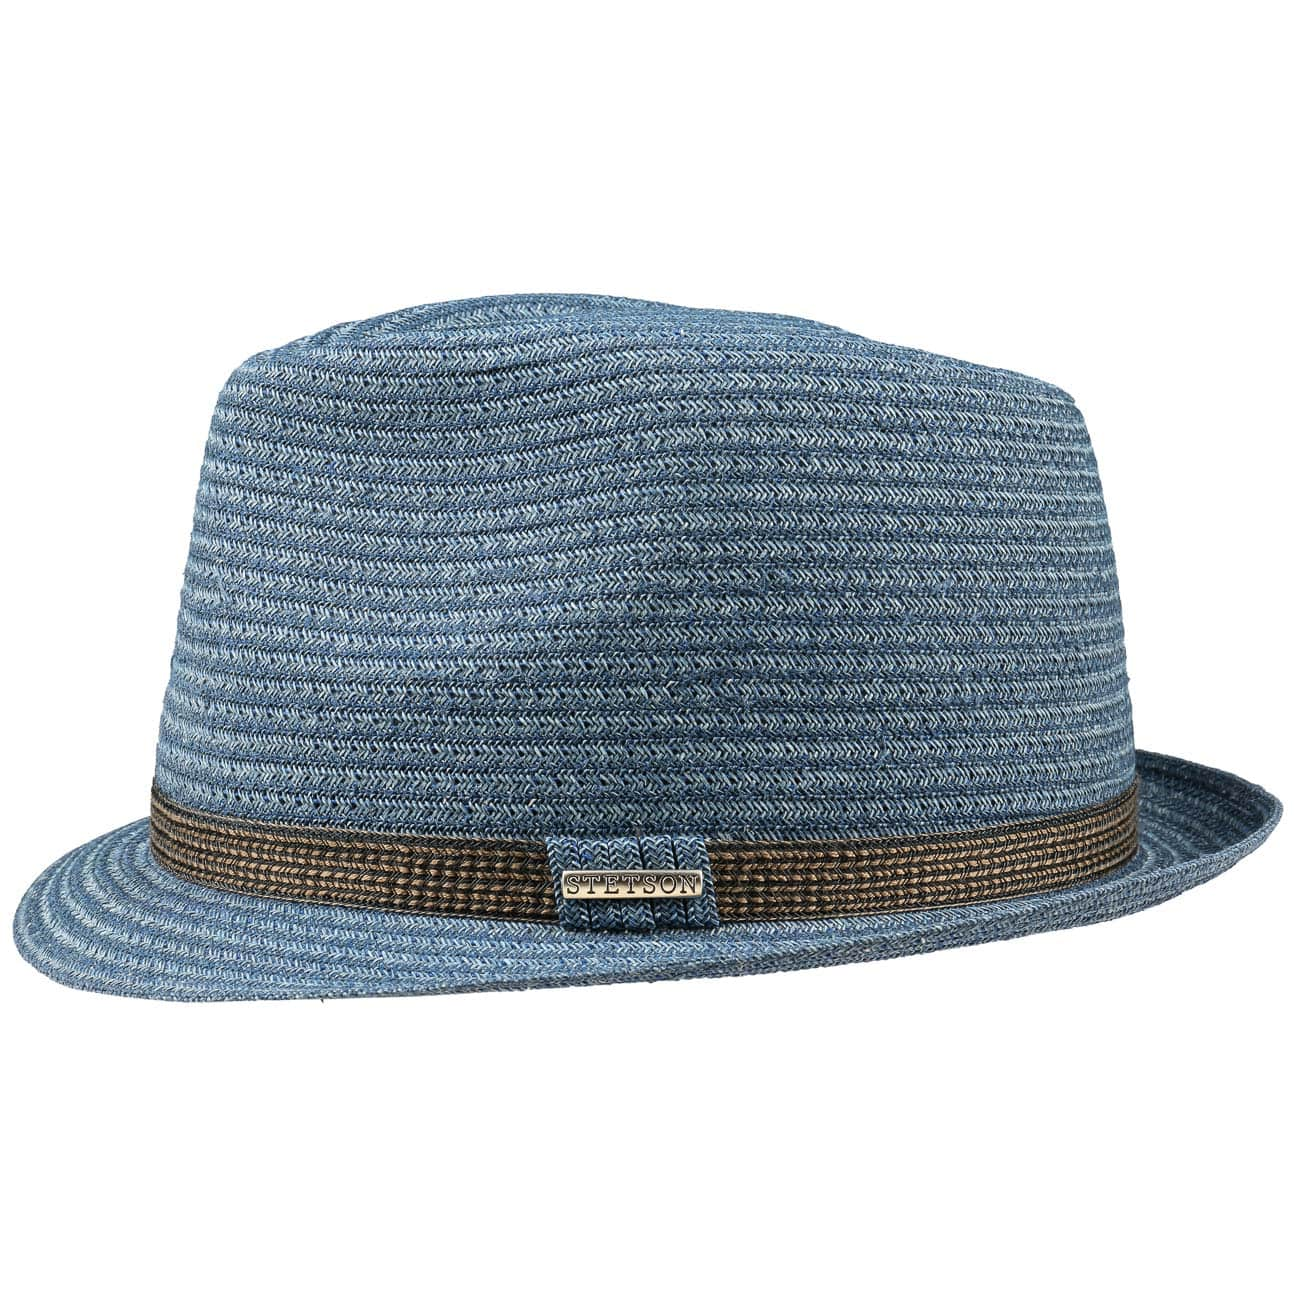 85e3142f158 ... Selden Toyo Trilby Straw Hat by Stetson - blue 4 ...